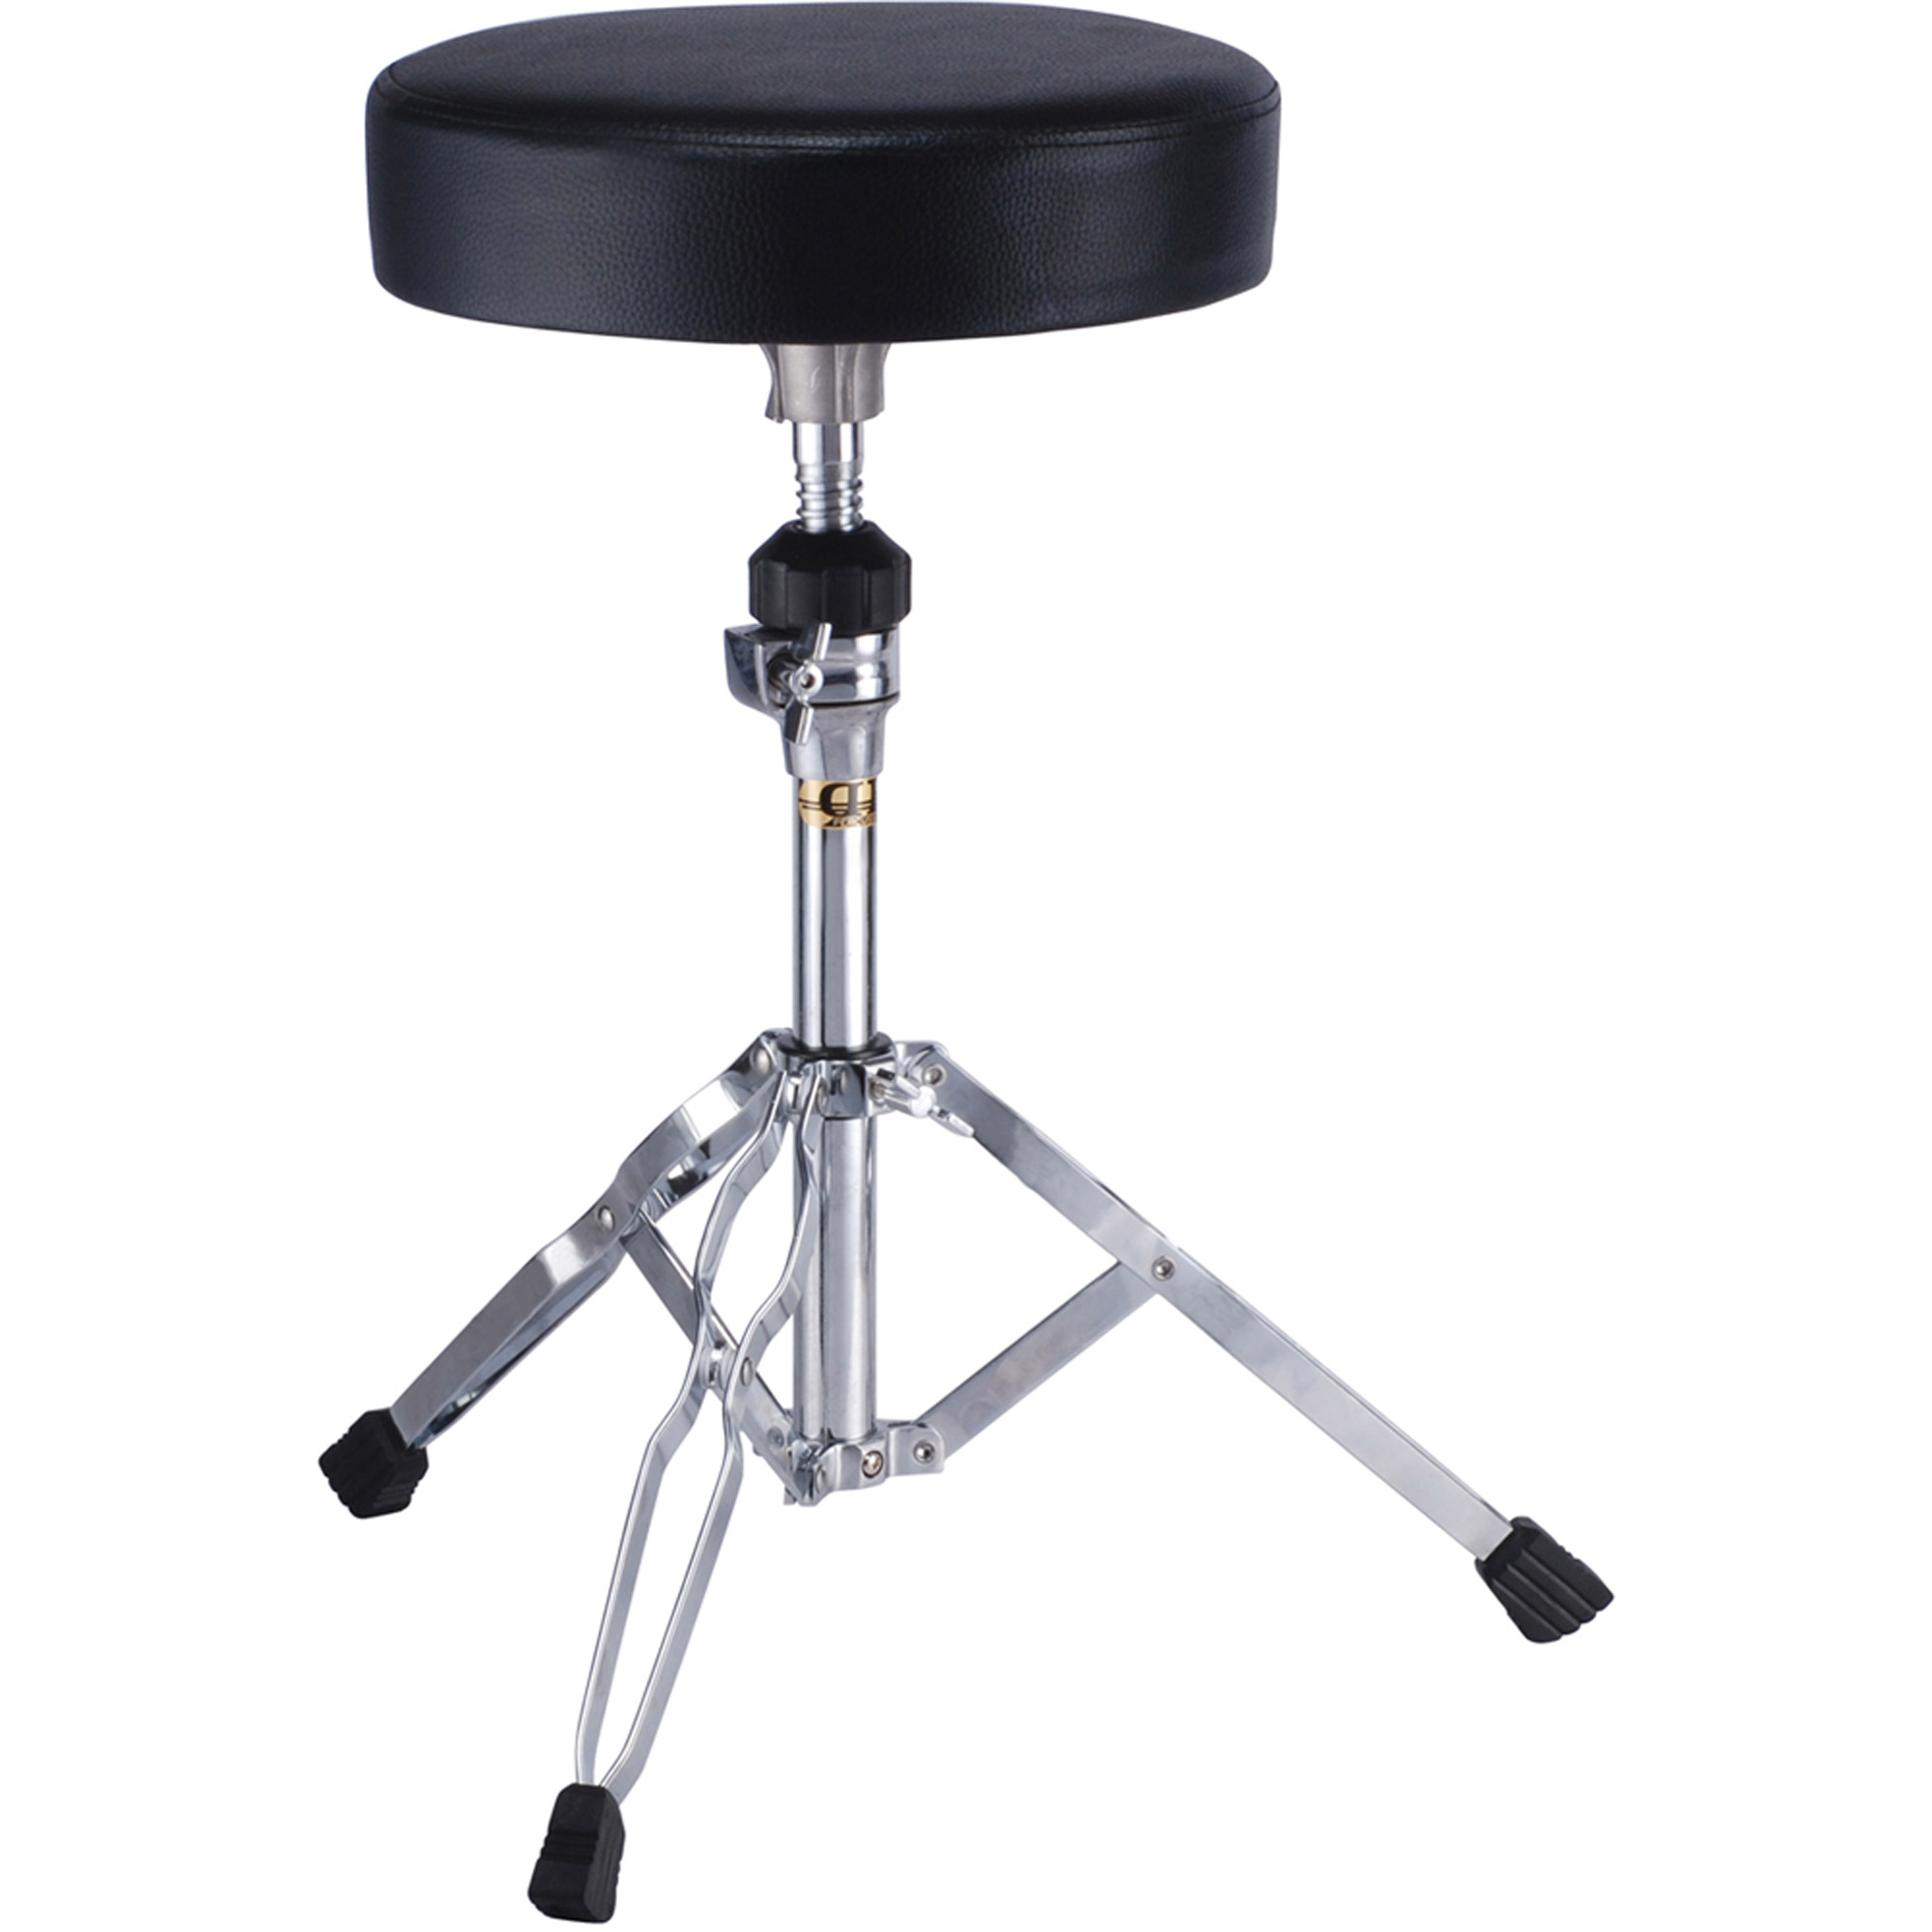 Union DTRP-616B 700 Series Adjustable Drum Throne by Union